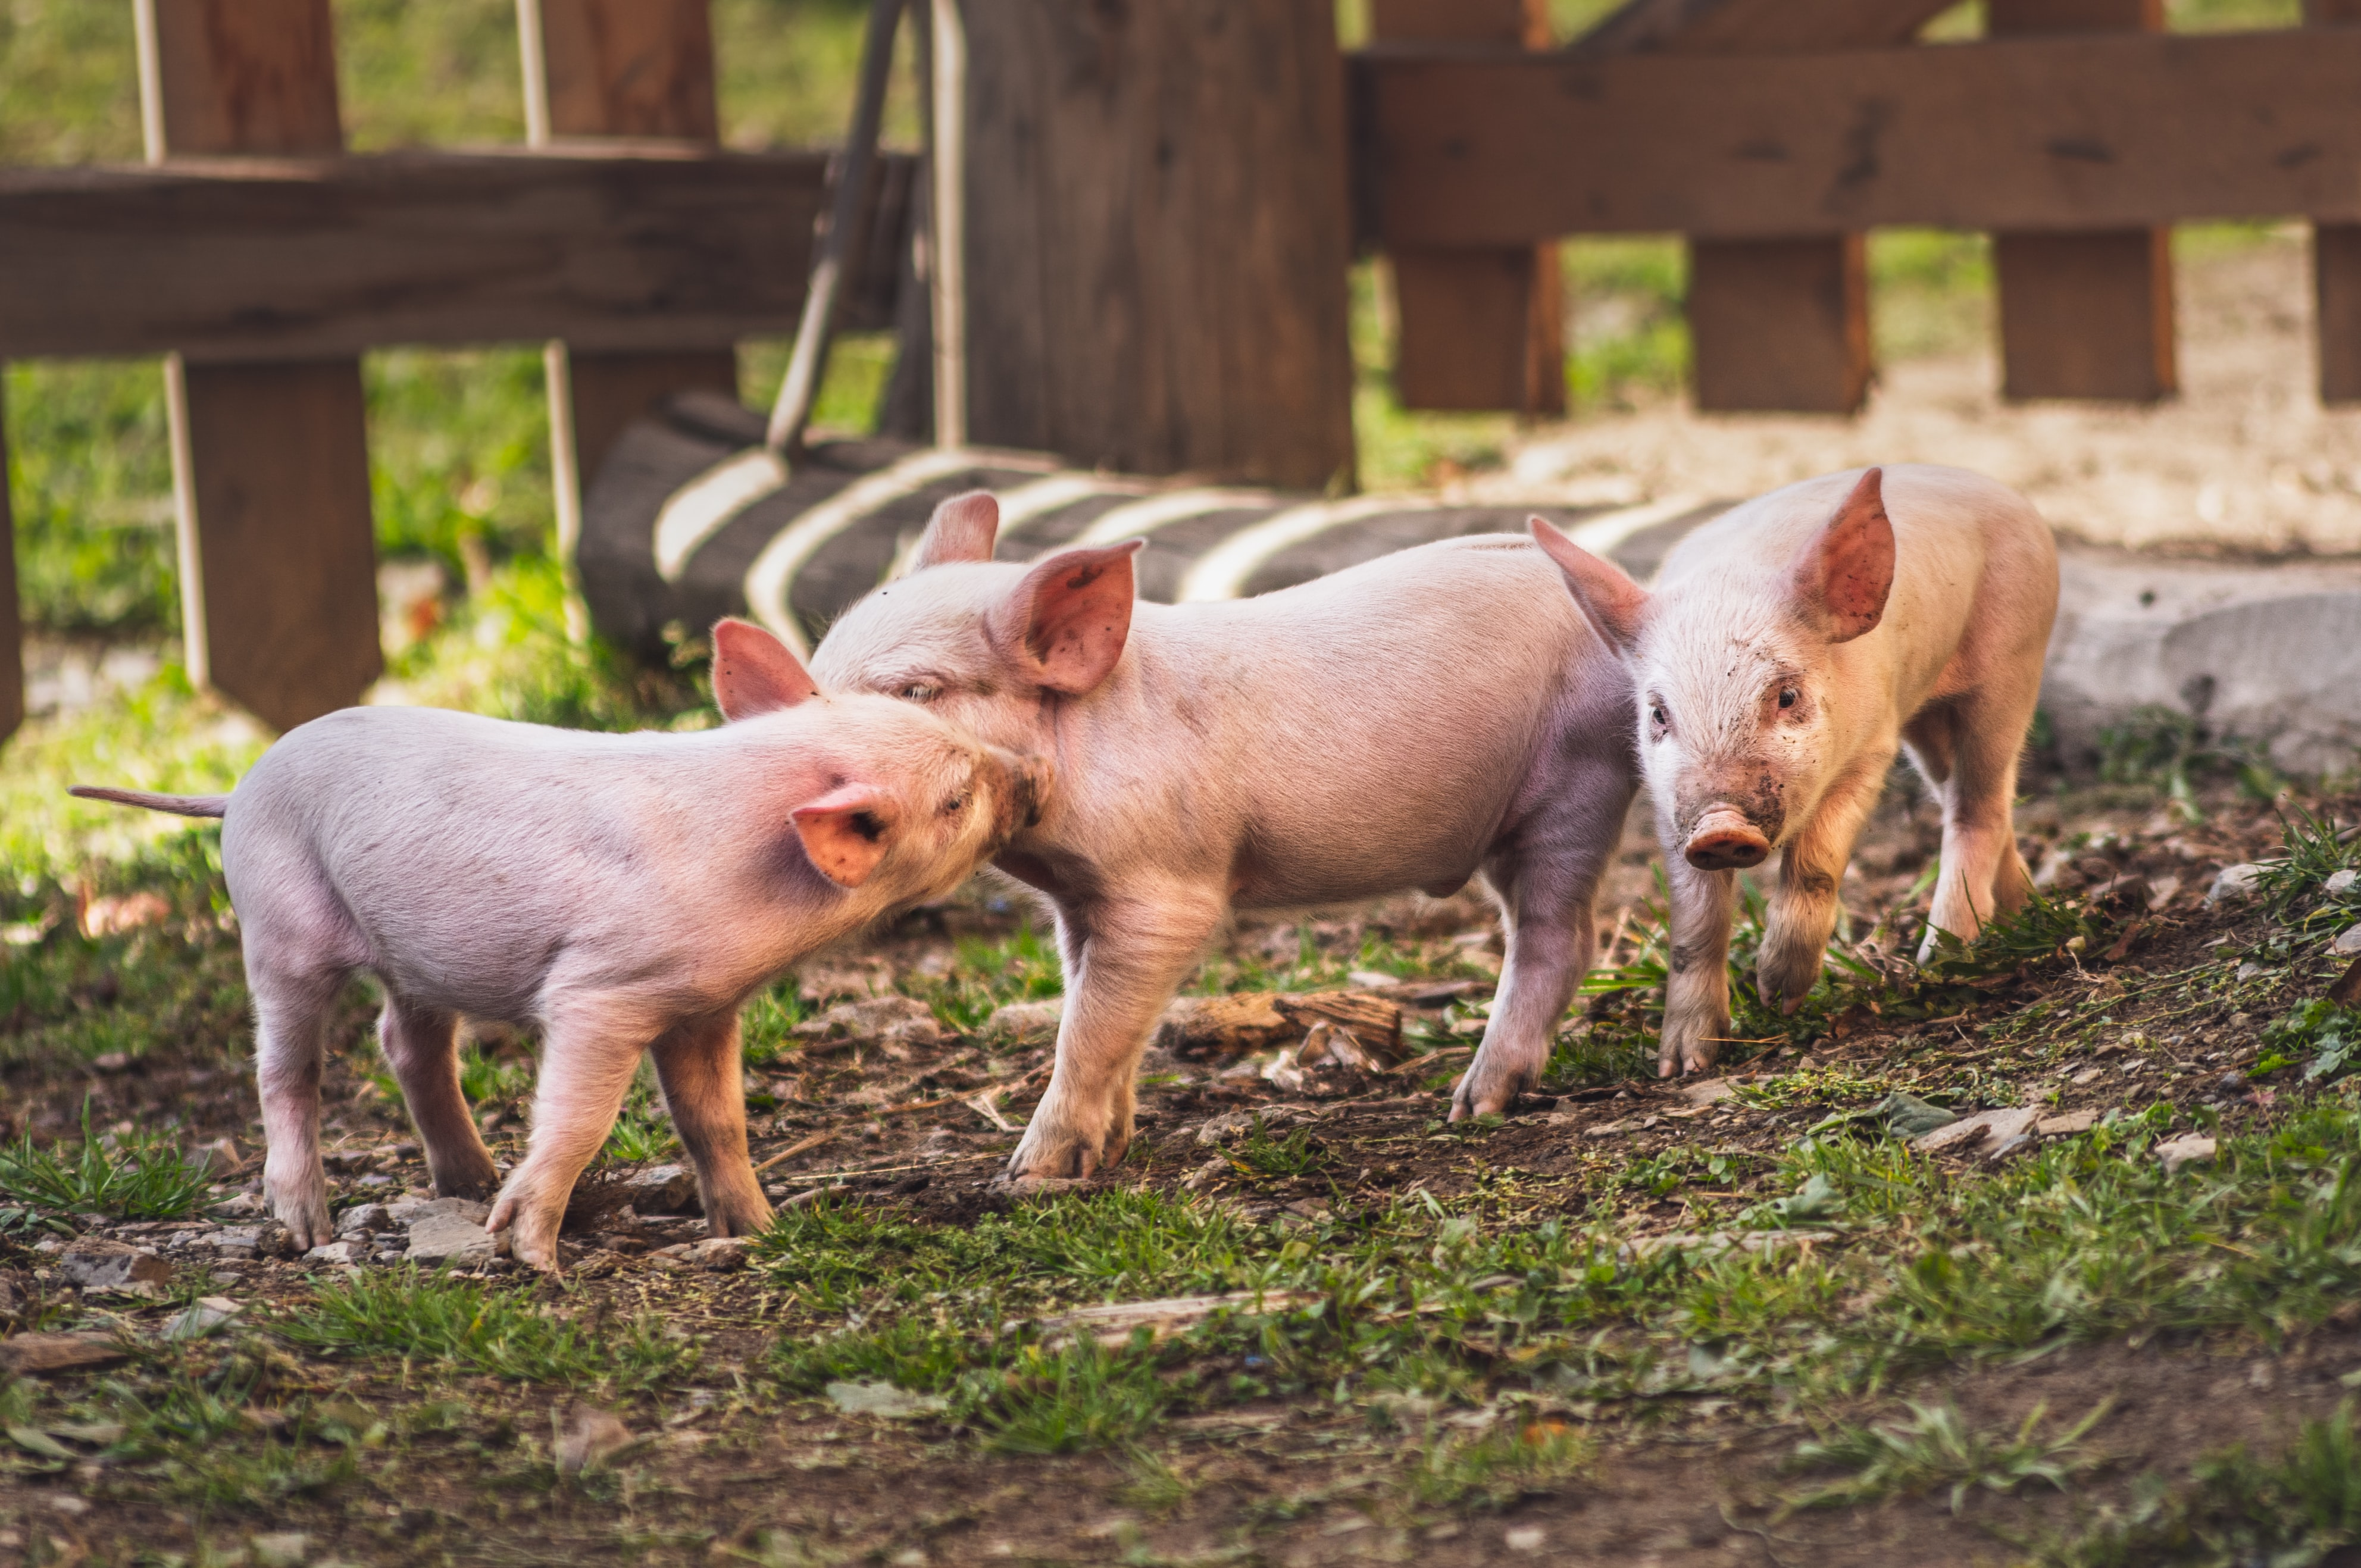 Three piglets play in a pen on a summer's day.